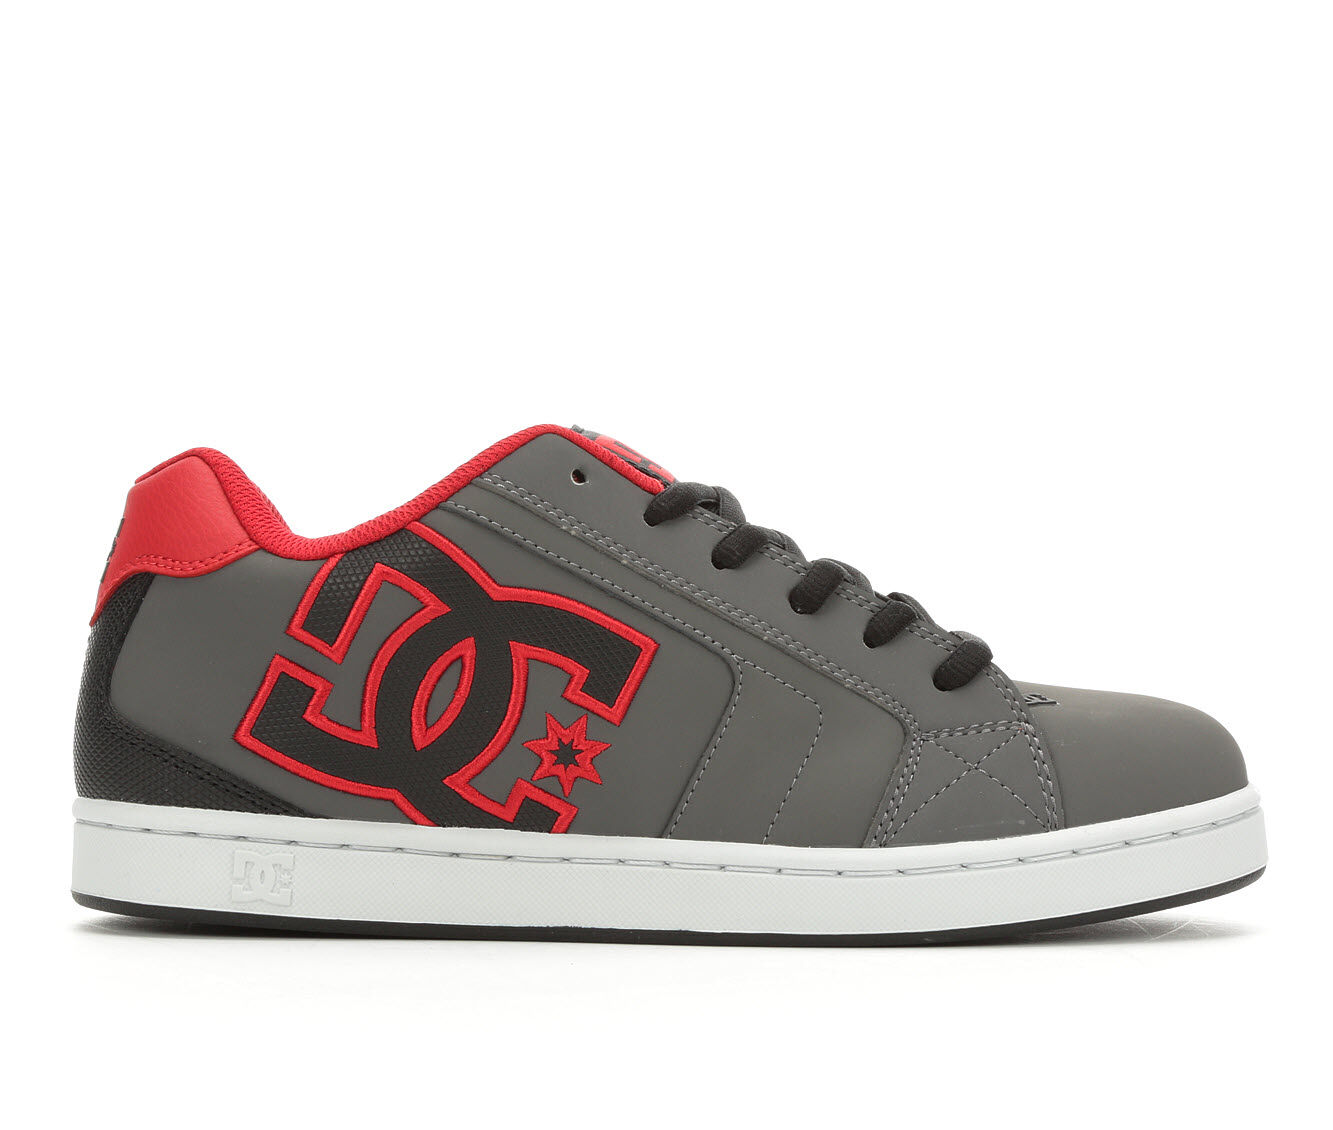 Men's DC Net Skate Shoes Gry/Blk/Red GBG